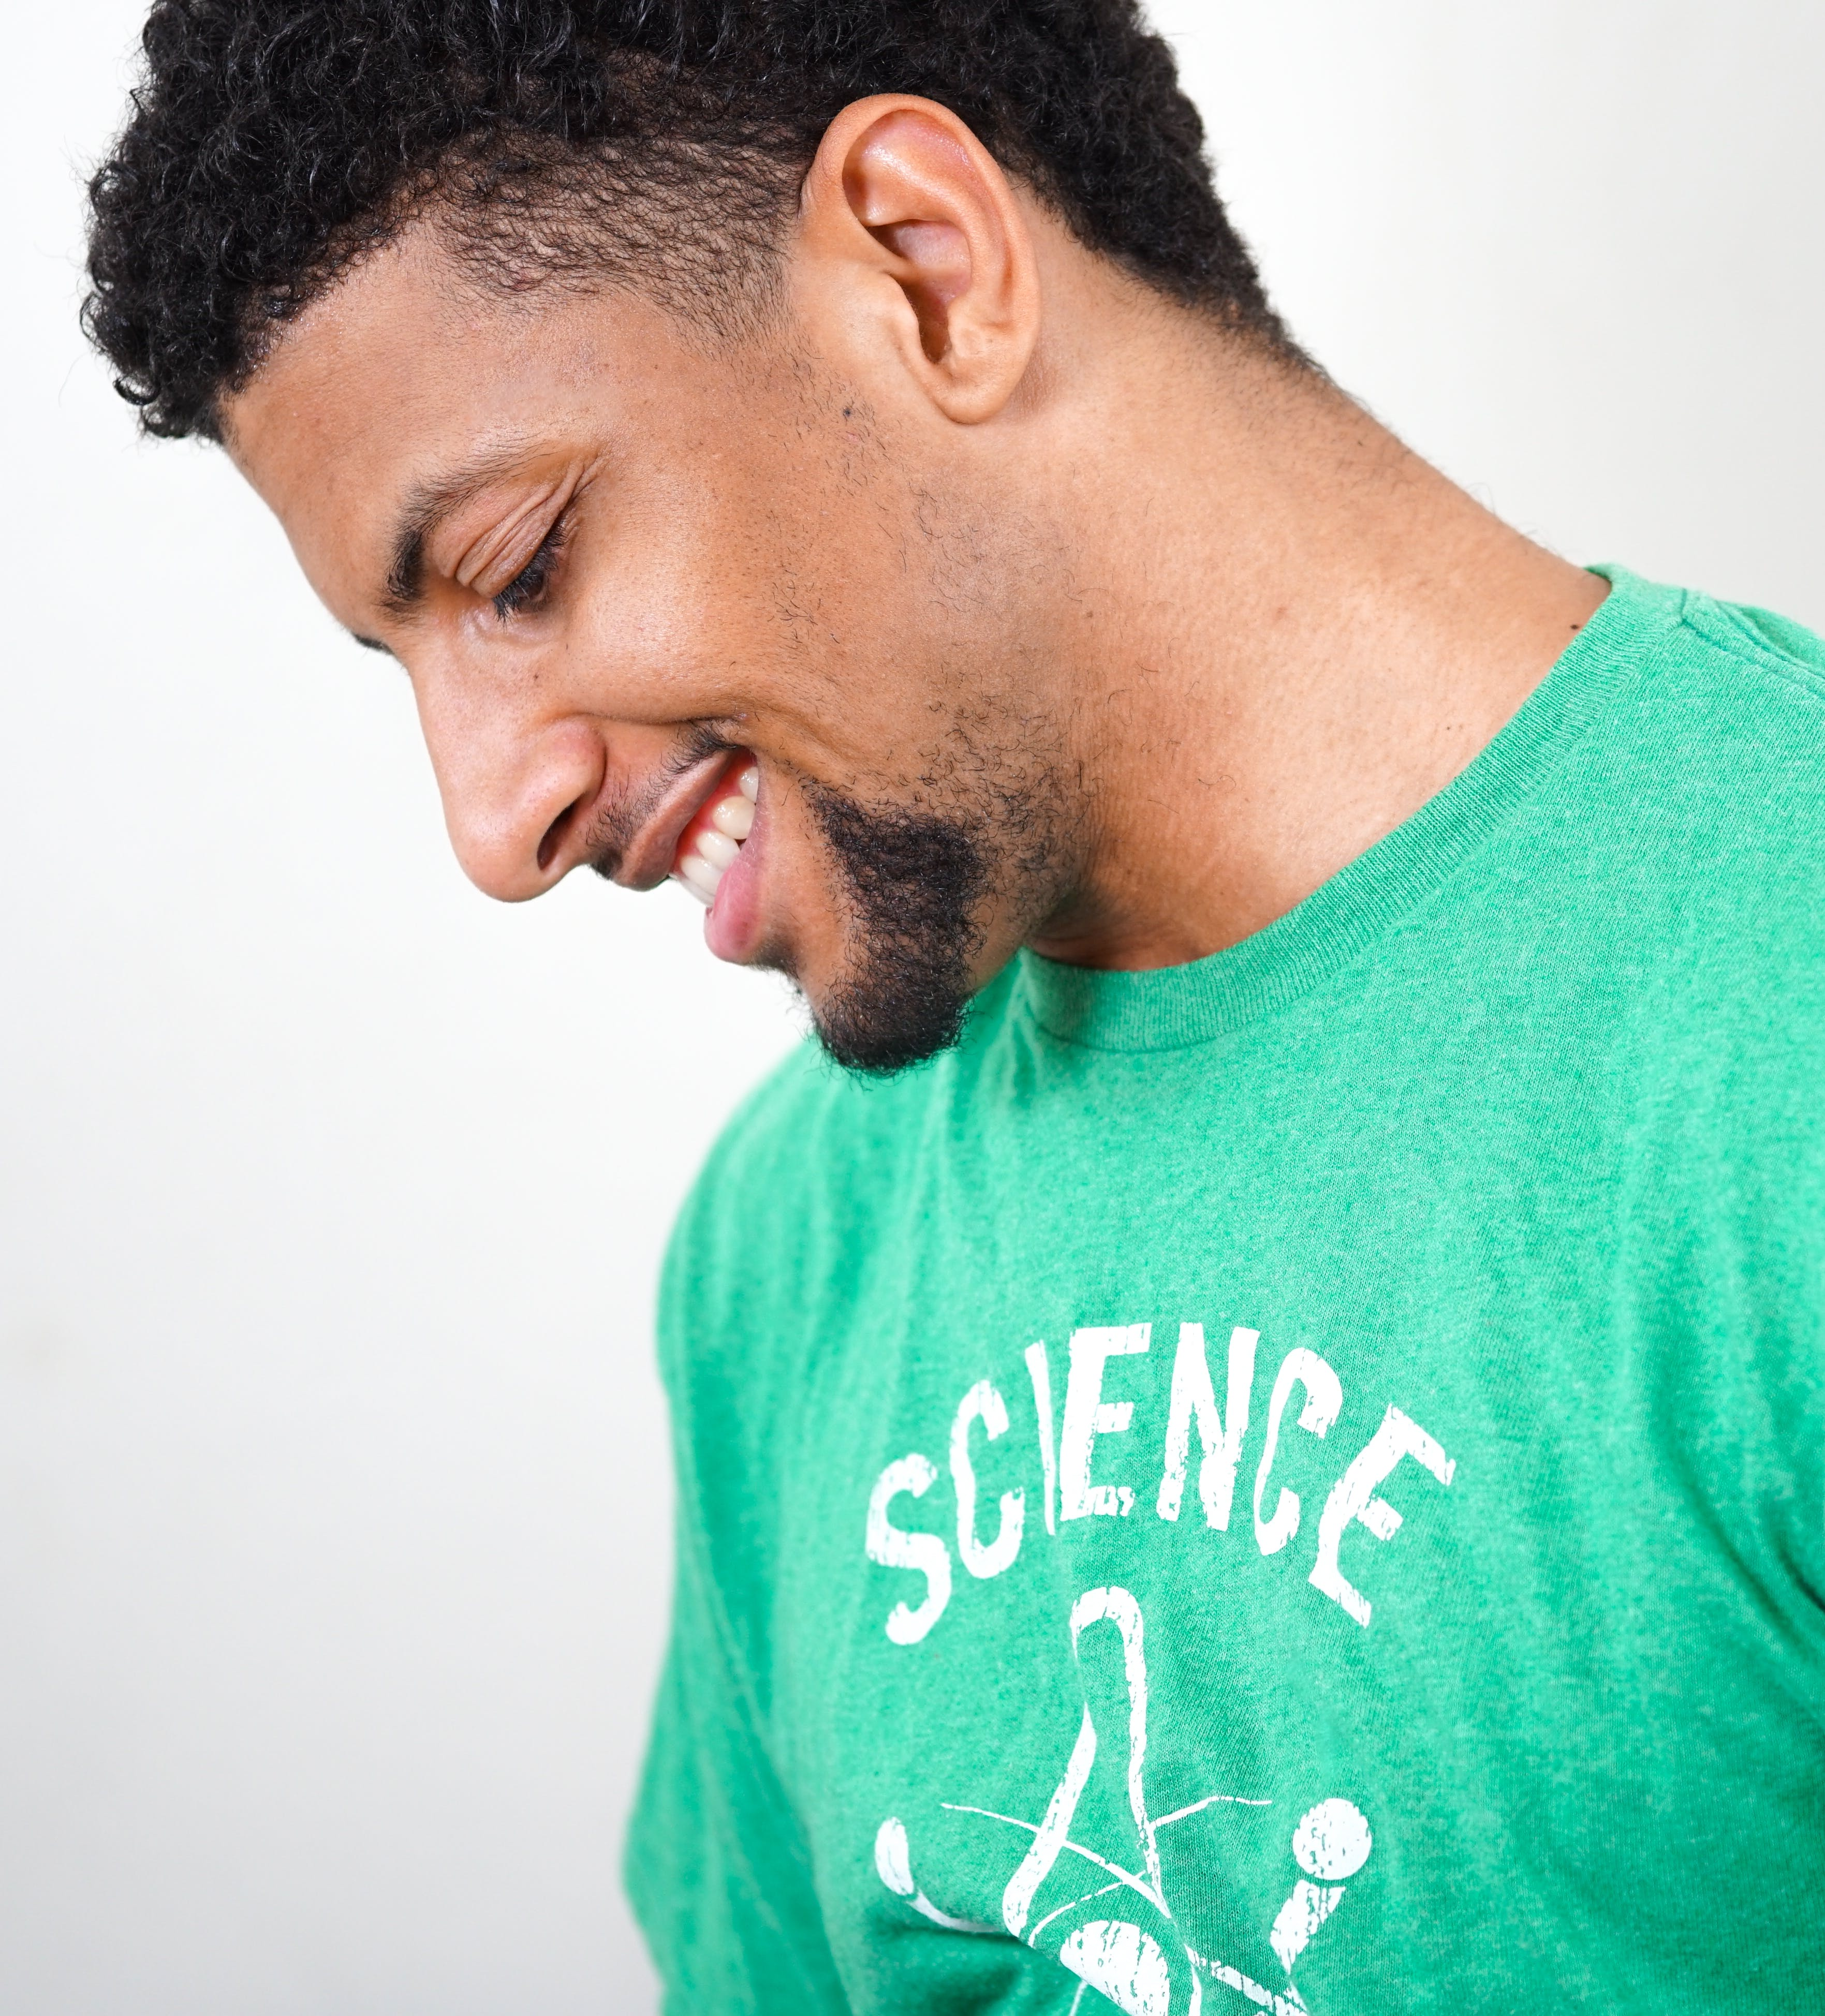 Free stock photo of science, science man, science guy, science communicator